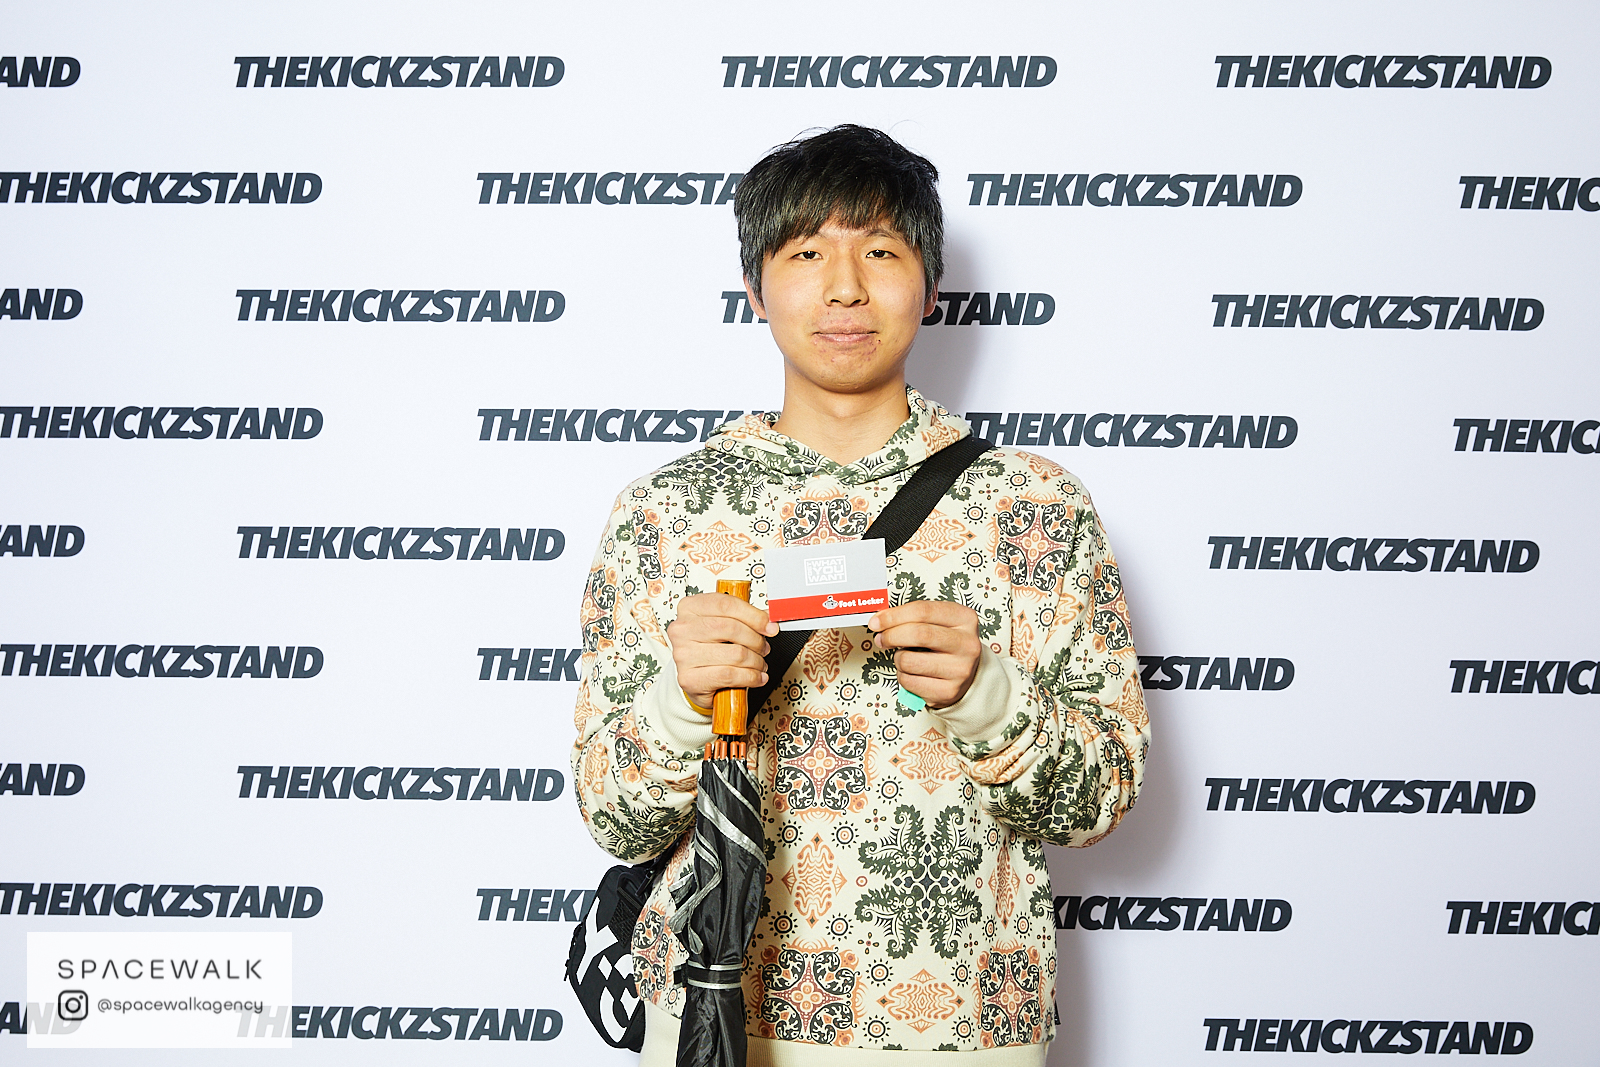 KICKZSTAND_BOOTH_094